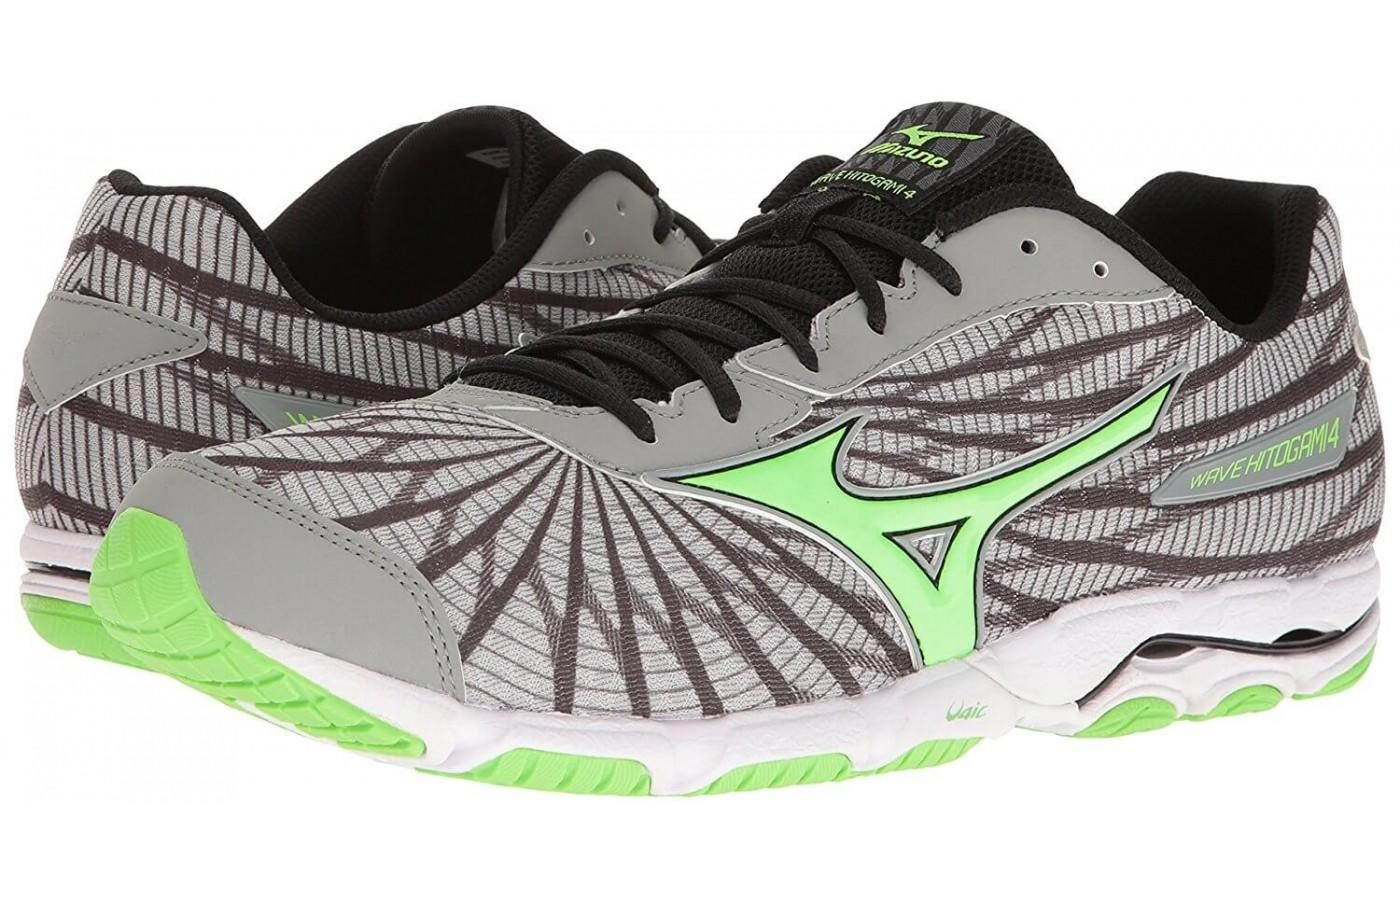 a pair of Mizuno Wave Hitogami 4's are a solid investment in a durable road racing shoe